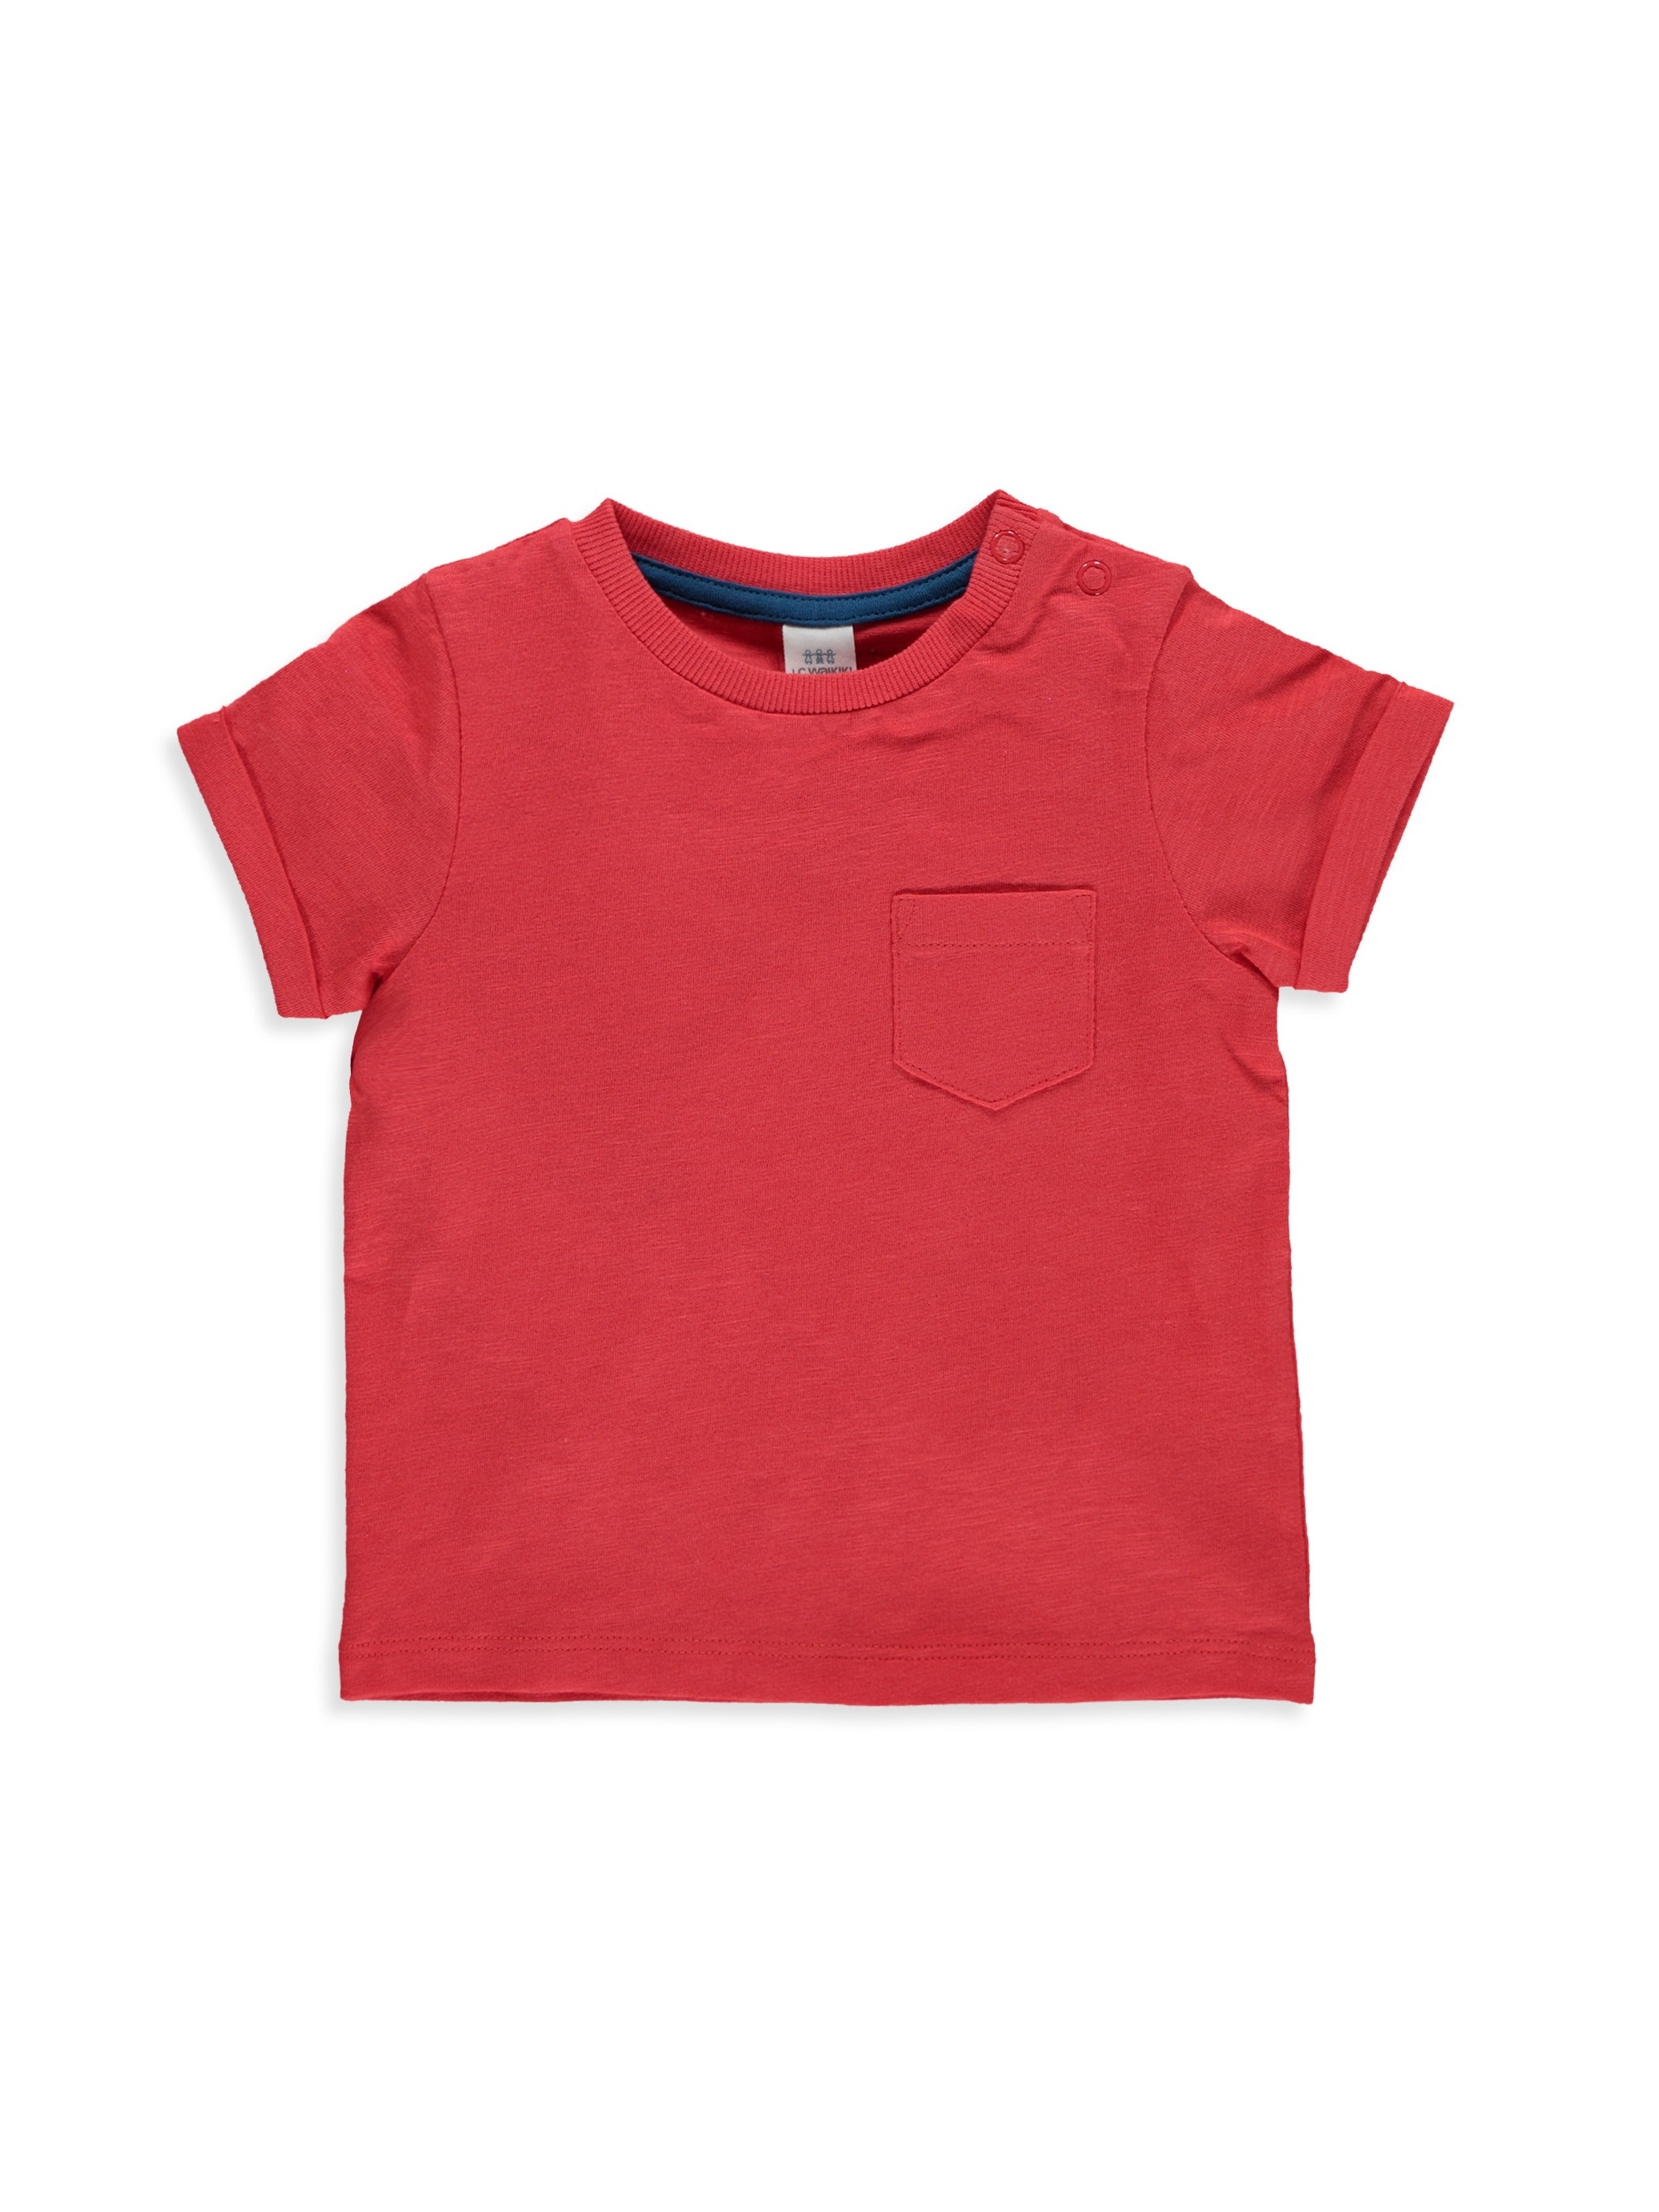 Coral - T-Shirt - 8S3348Z1